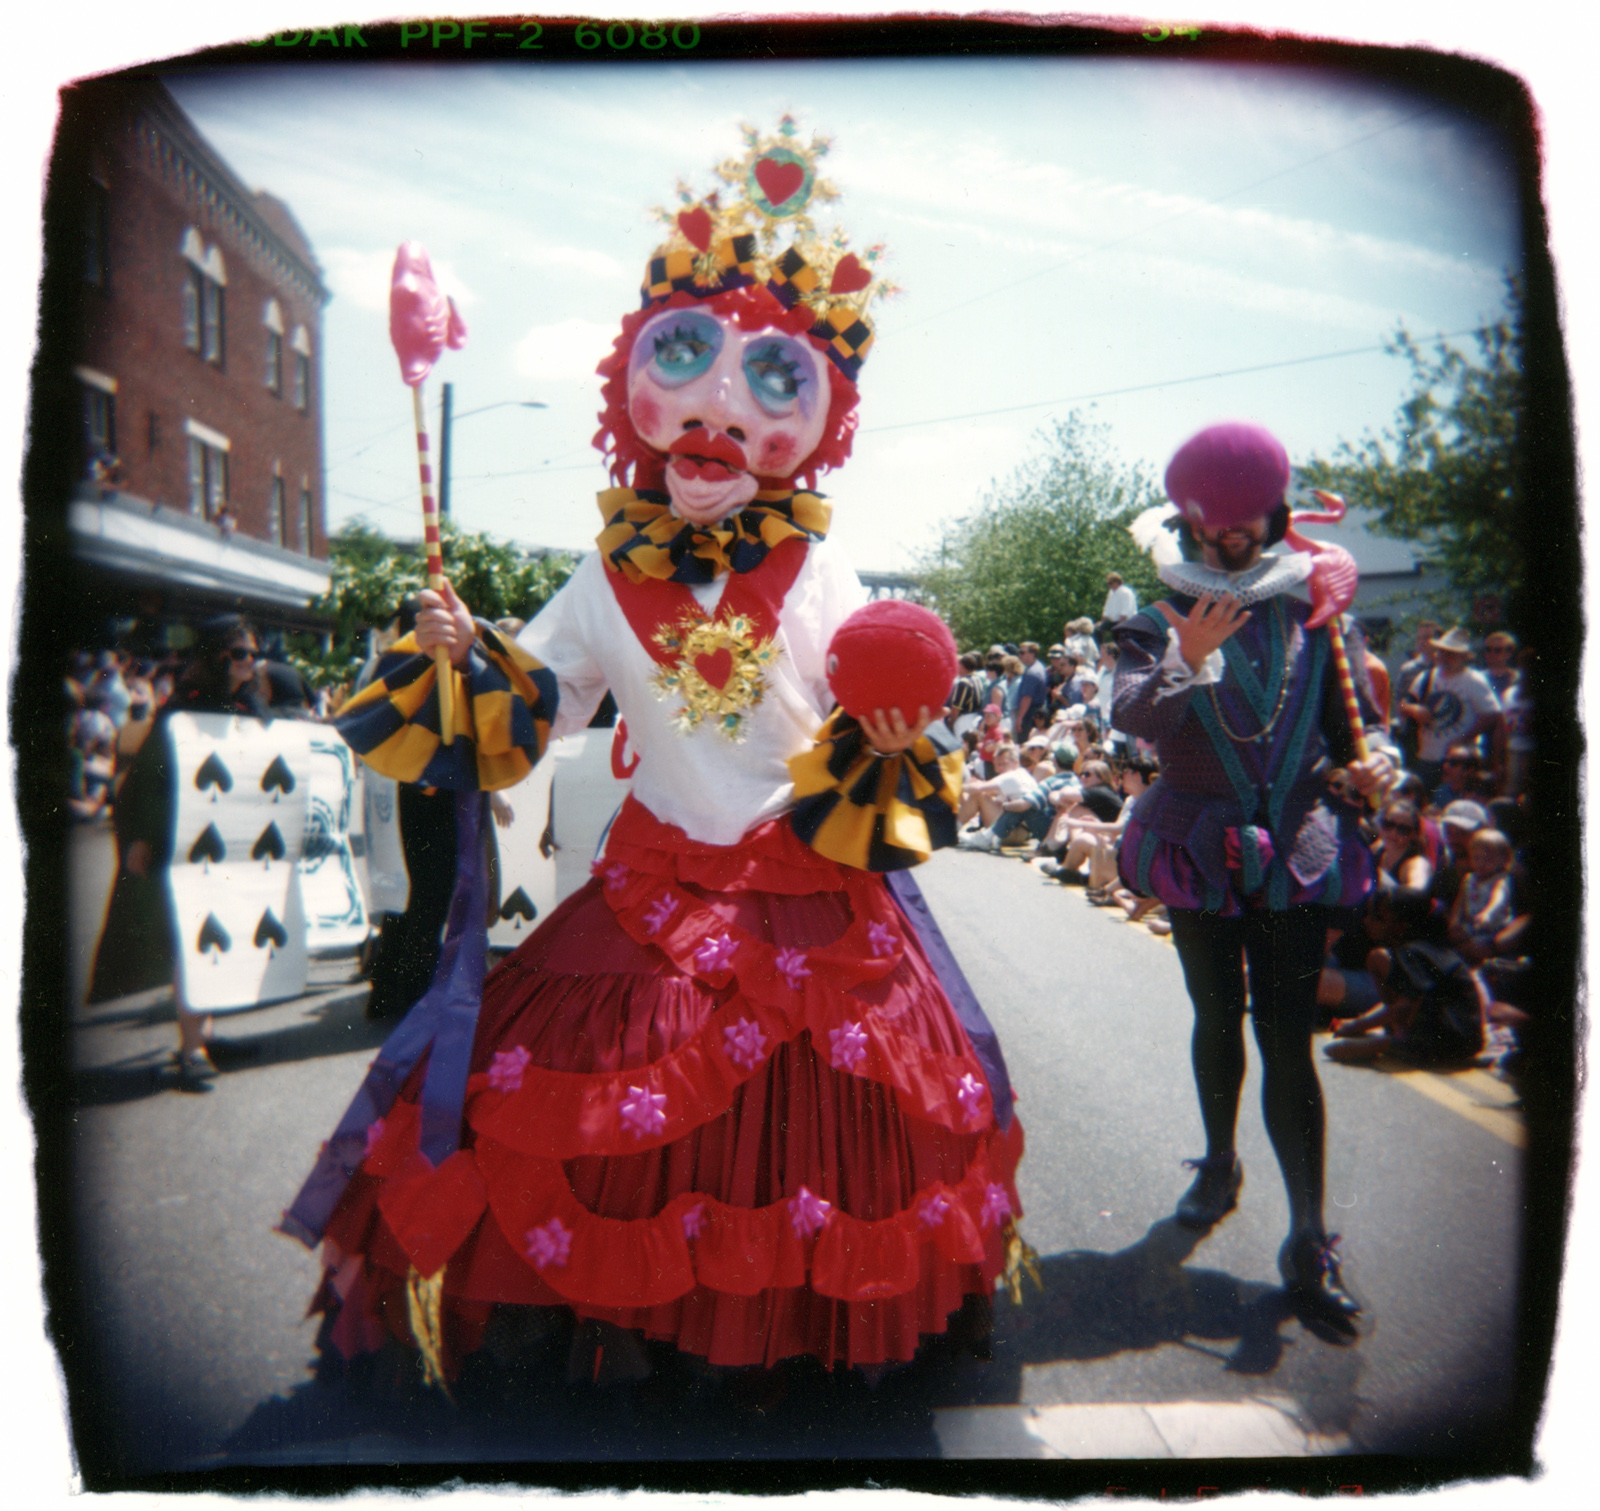 Queen of Hearts by David Catherine Ti, Fremont Summer Solstice Parade, Seattle 1996